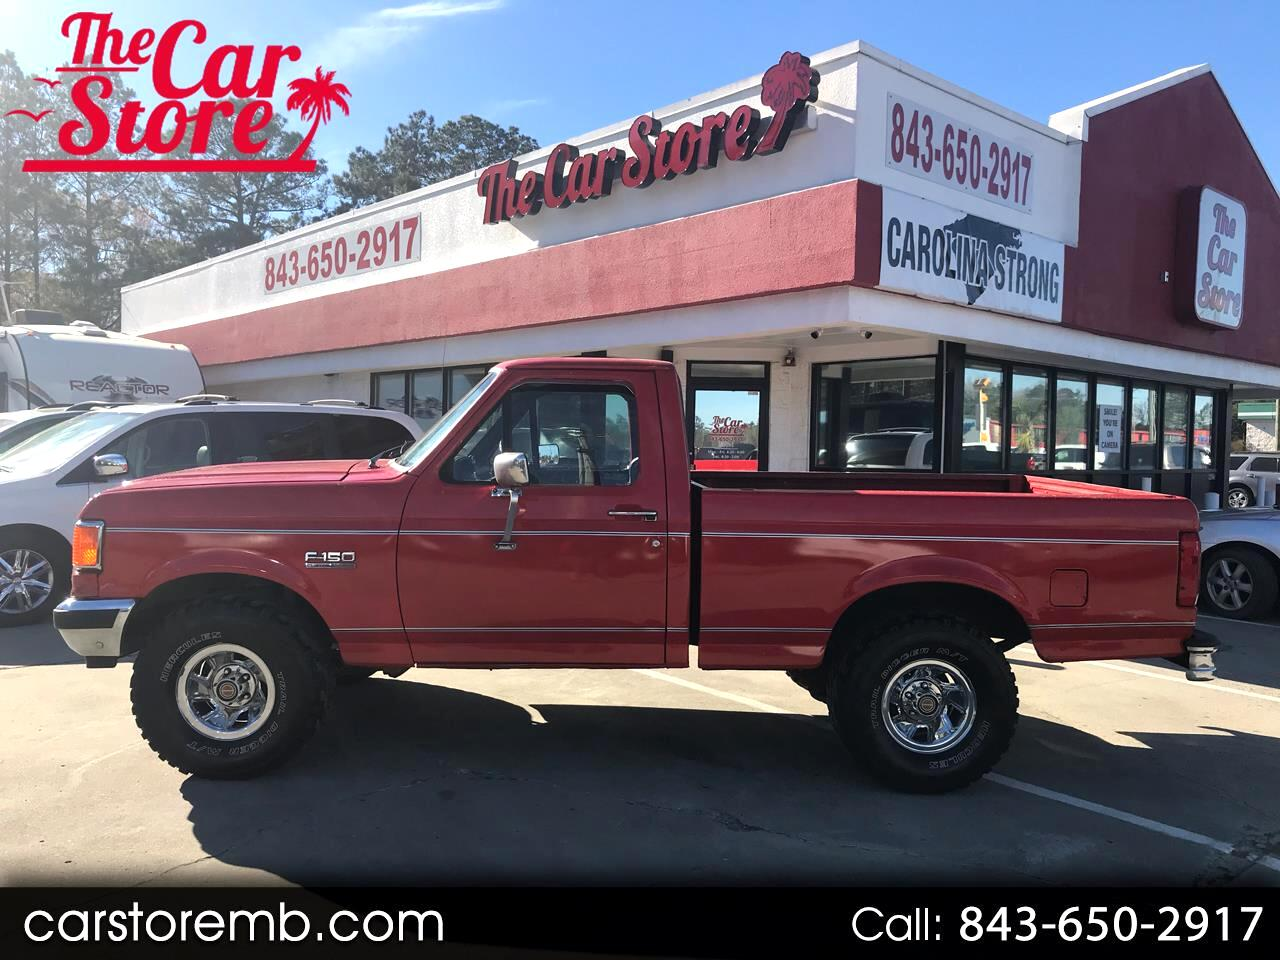 1989 Ford F-150 S Reg. Cab Short Bed 2WD